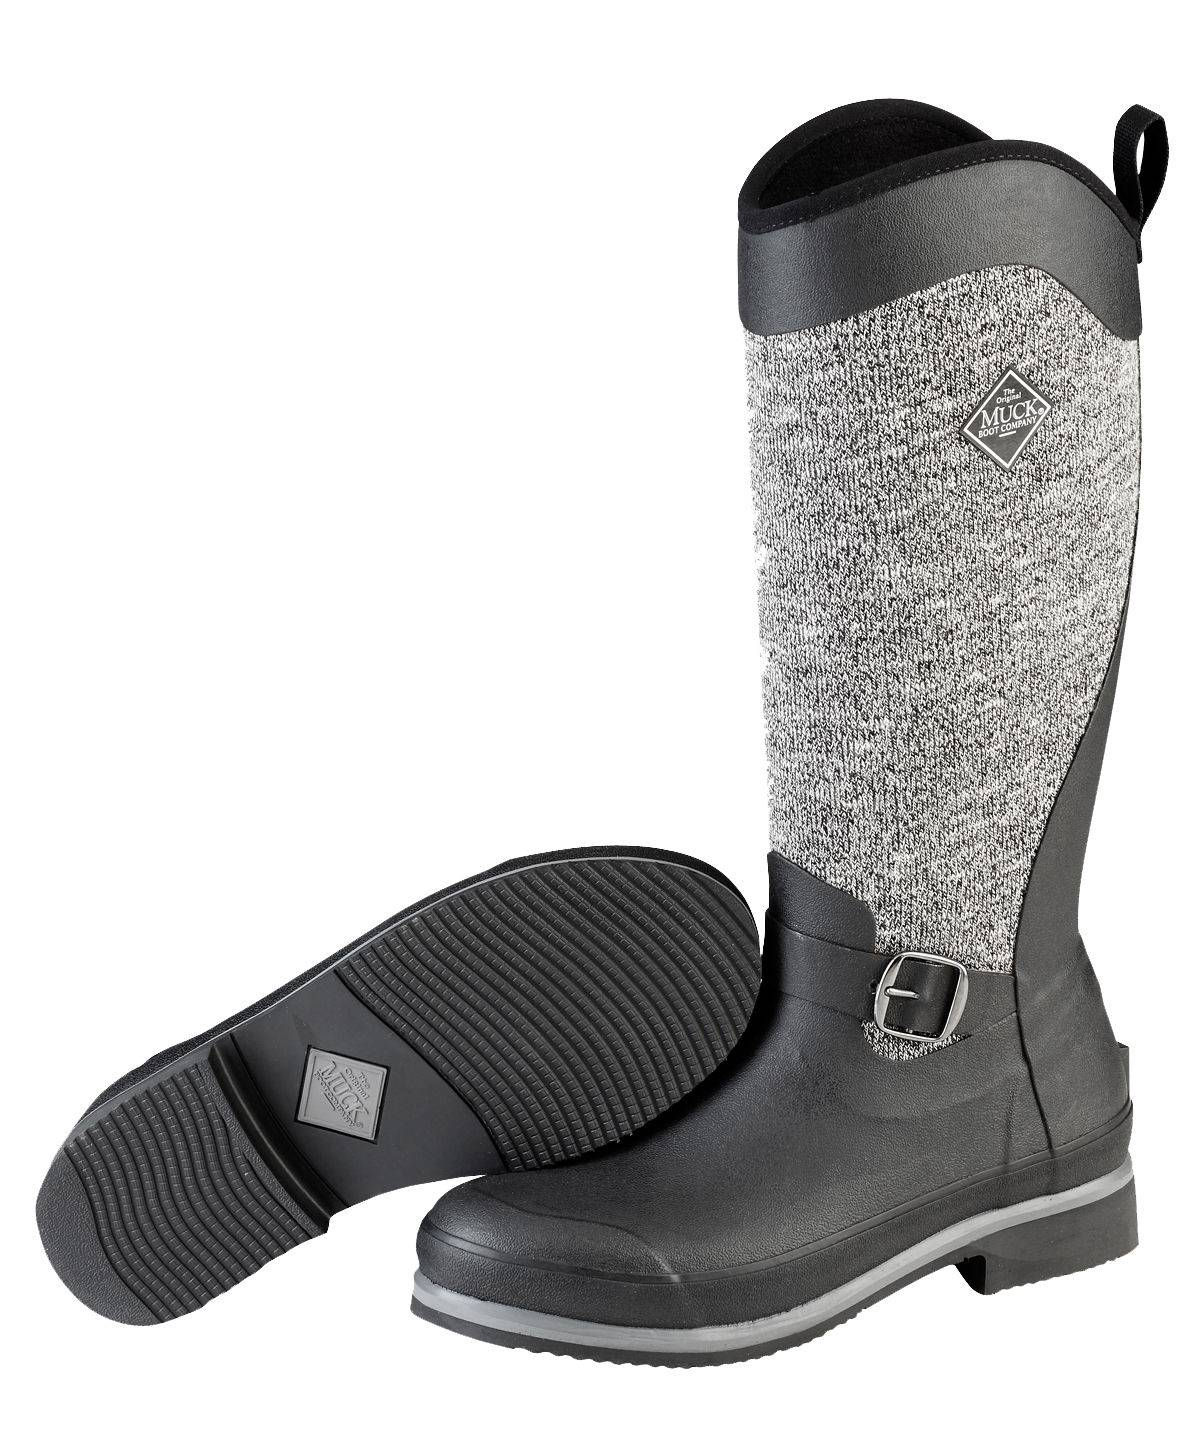 Muck Boots Reign Supreme Winter Boot - Ladies - Black Gray